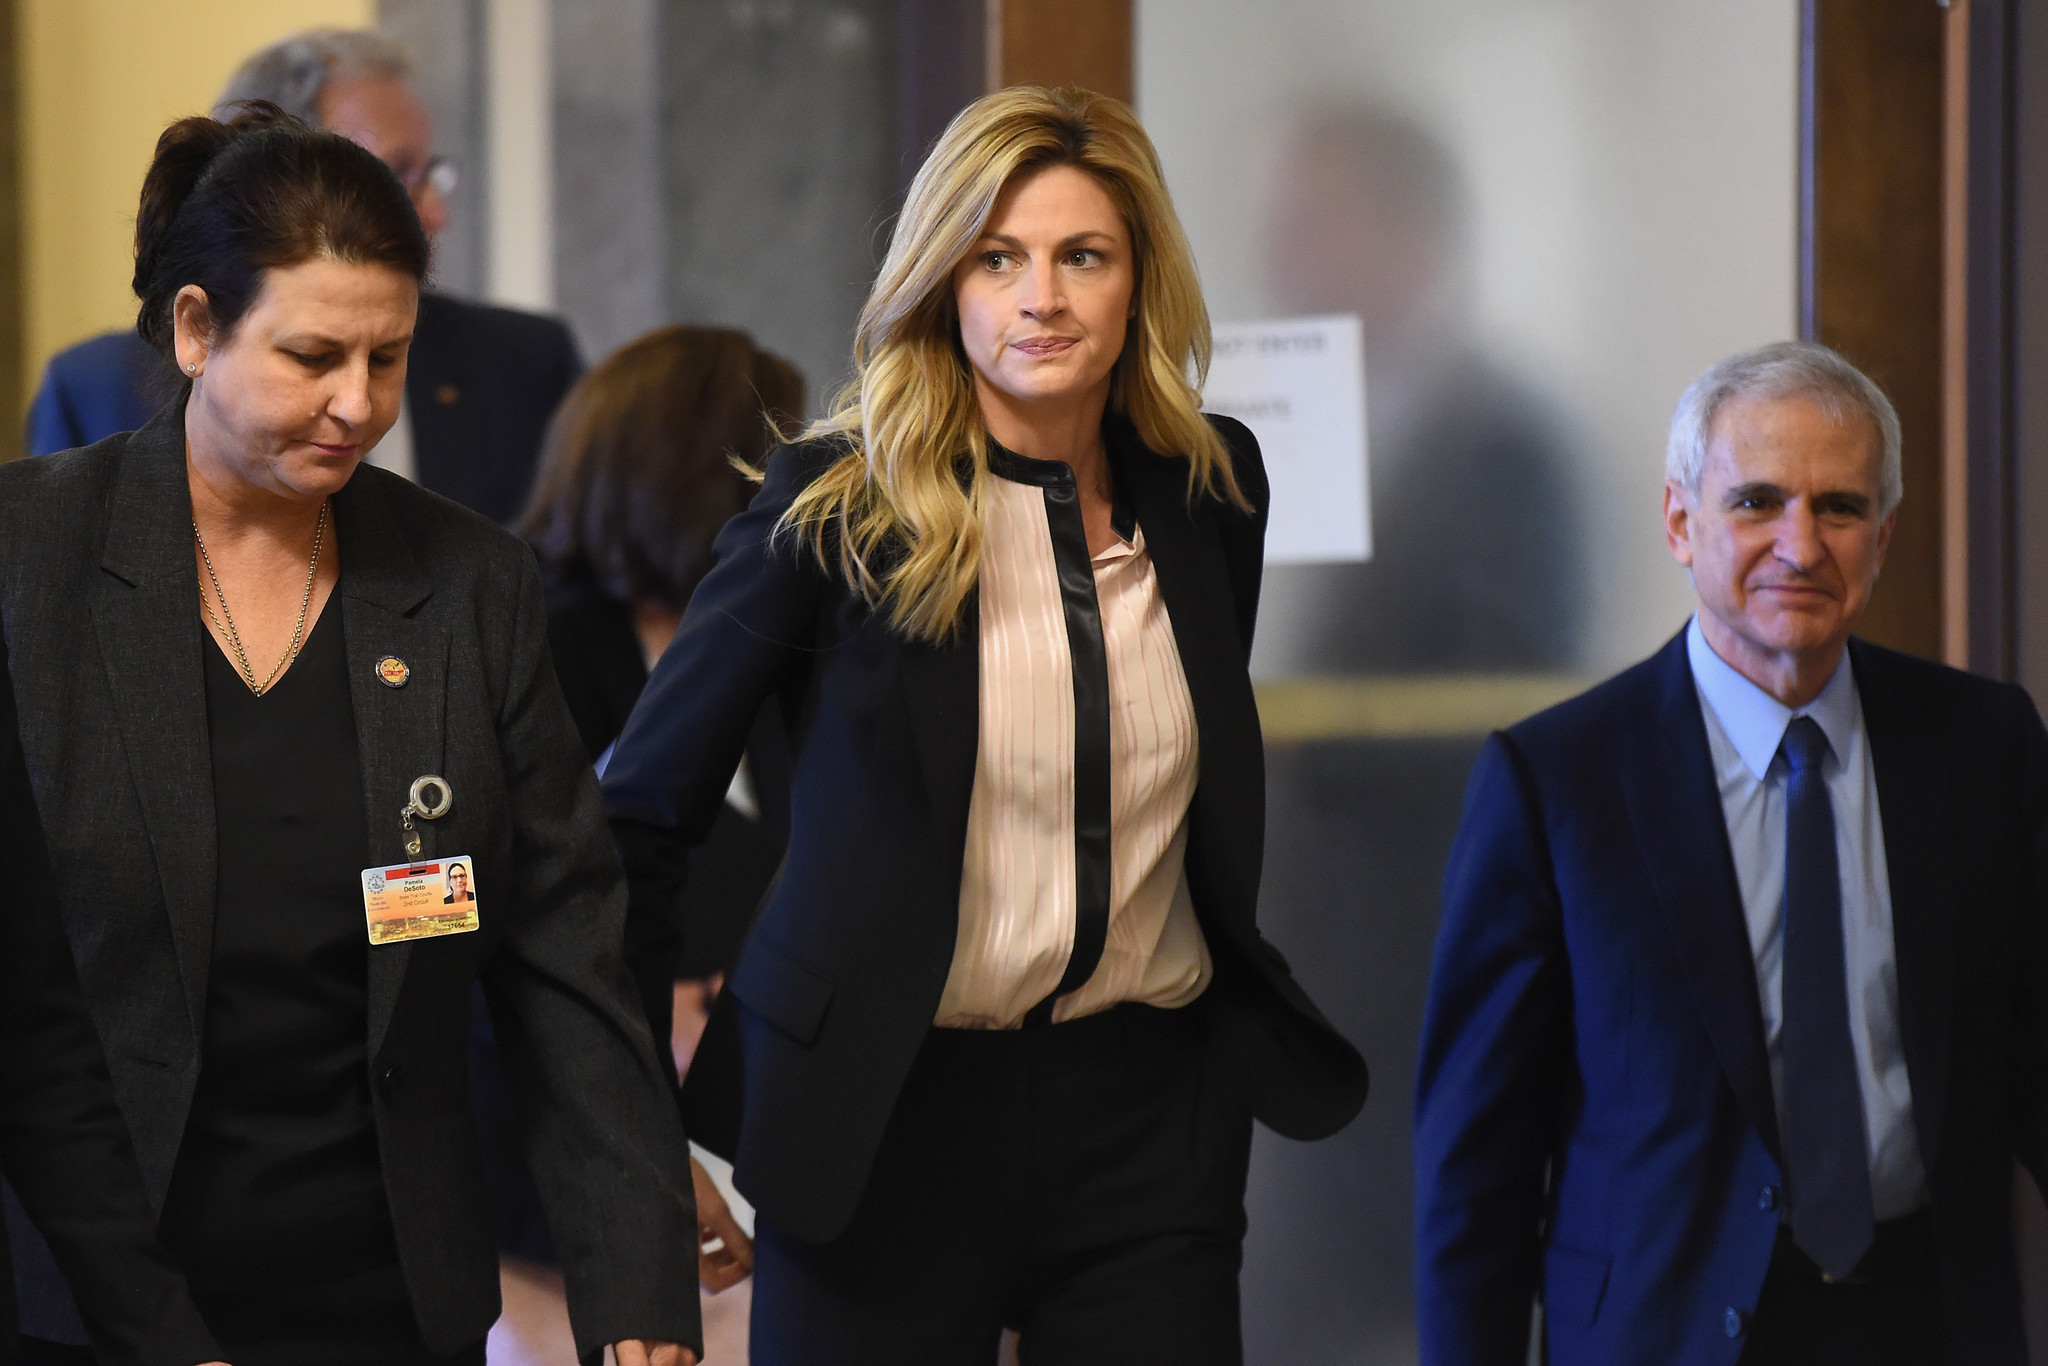 Erin Andrews awarded $55M civil case over nude video